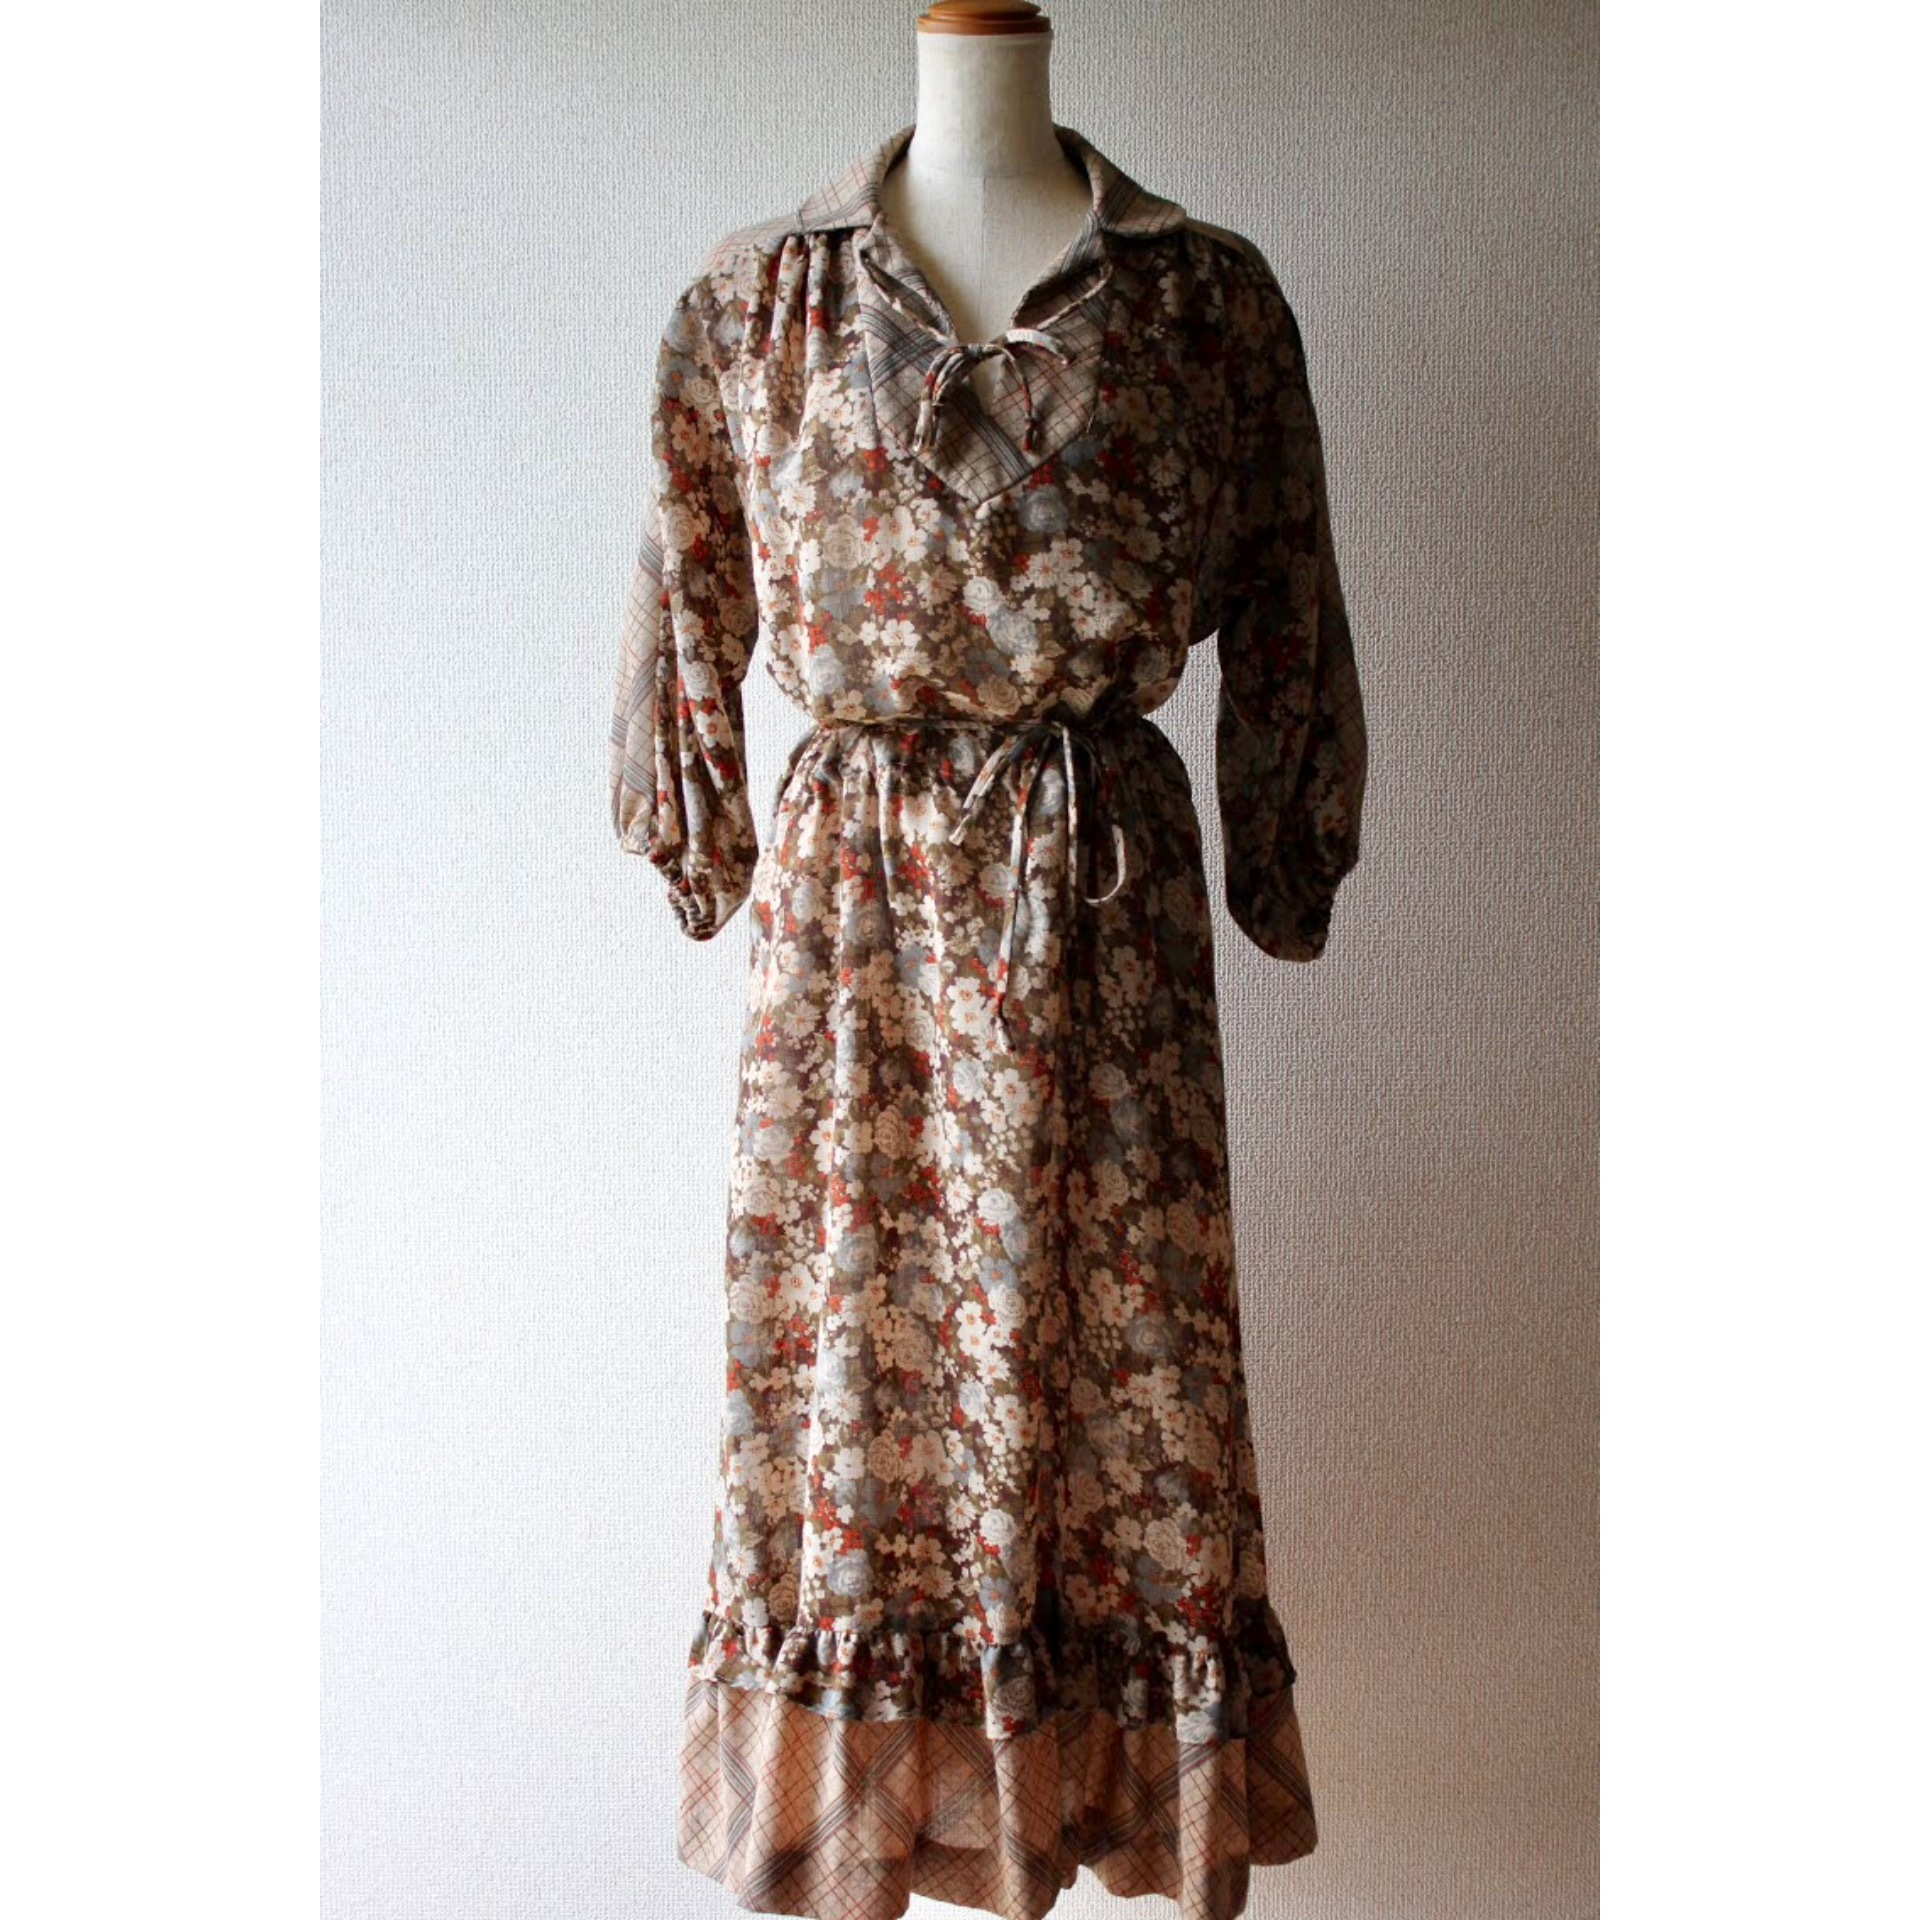 Vintage check and flower pattern dress